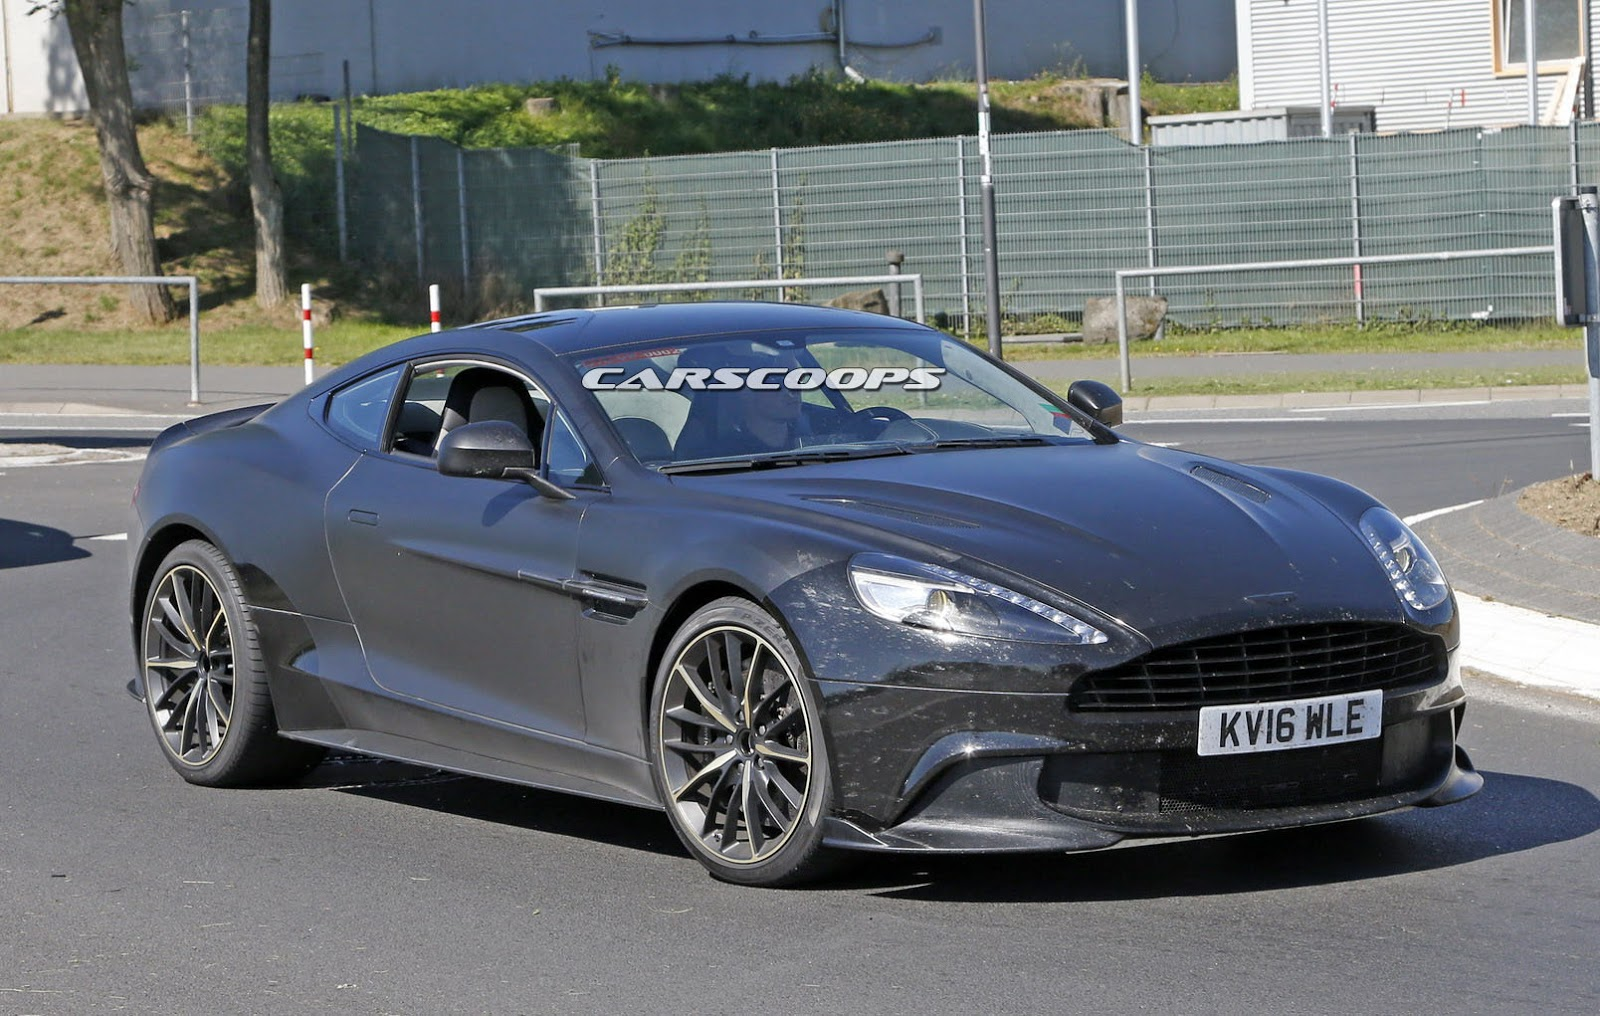 aston martin spied working on final vanquish s model. Black Bedroom Furniture Sets. Home Design Ideas